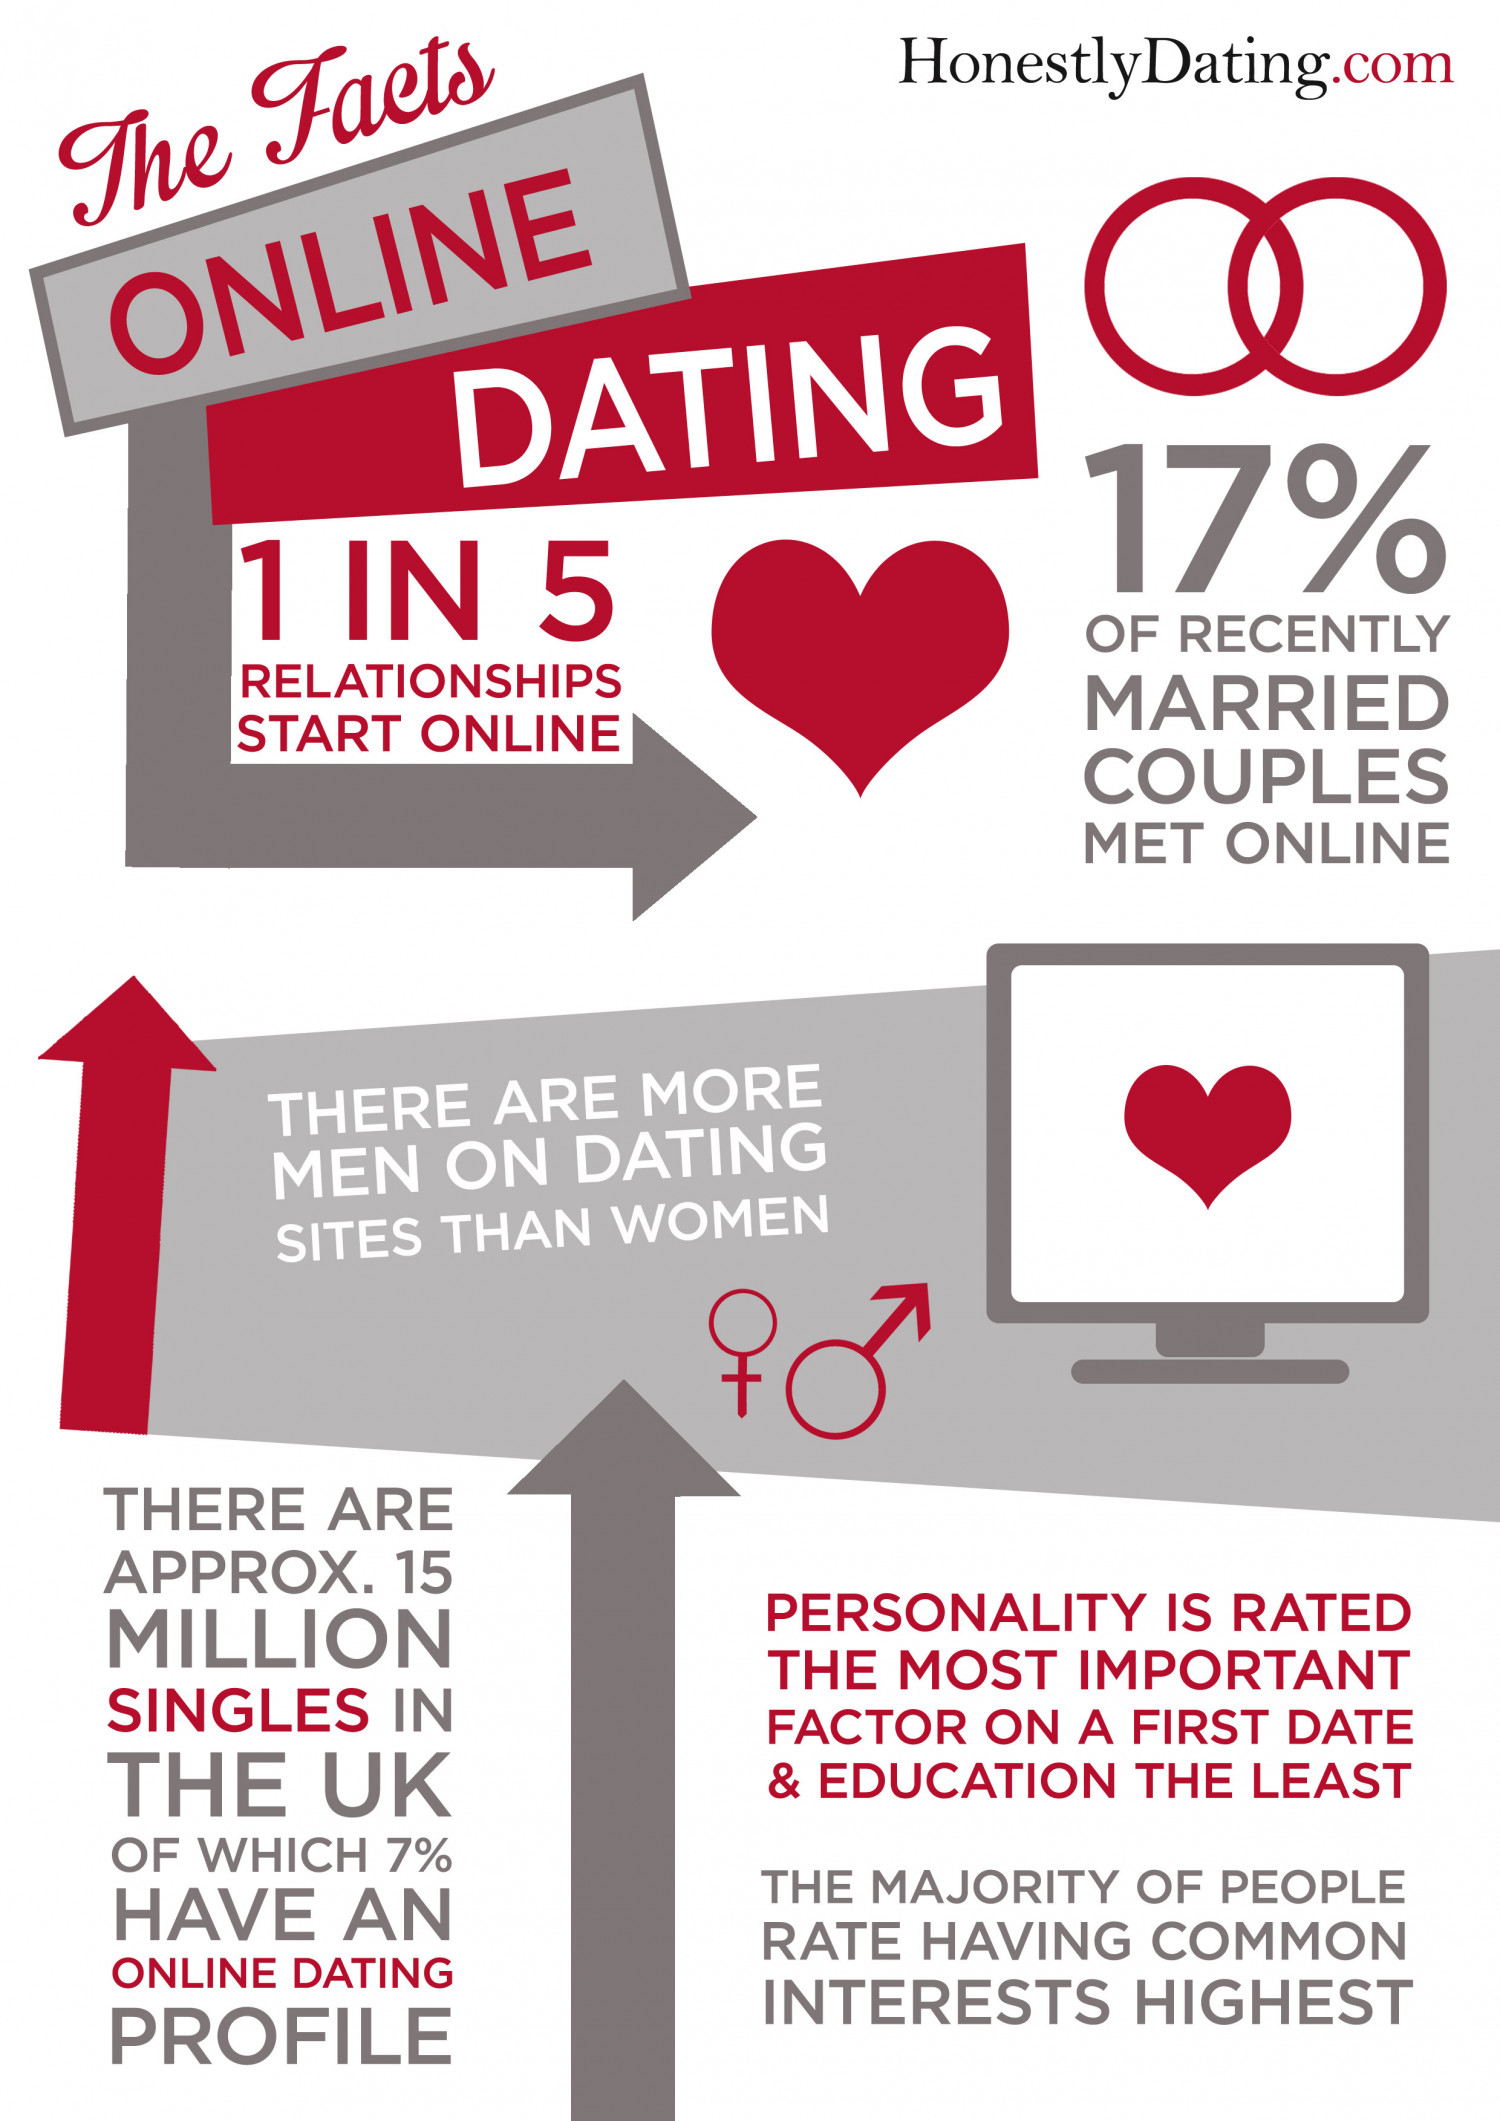 Online dating information